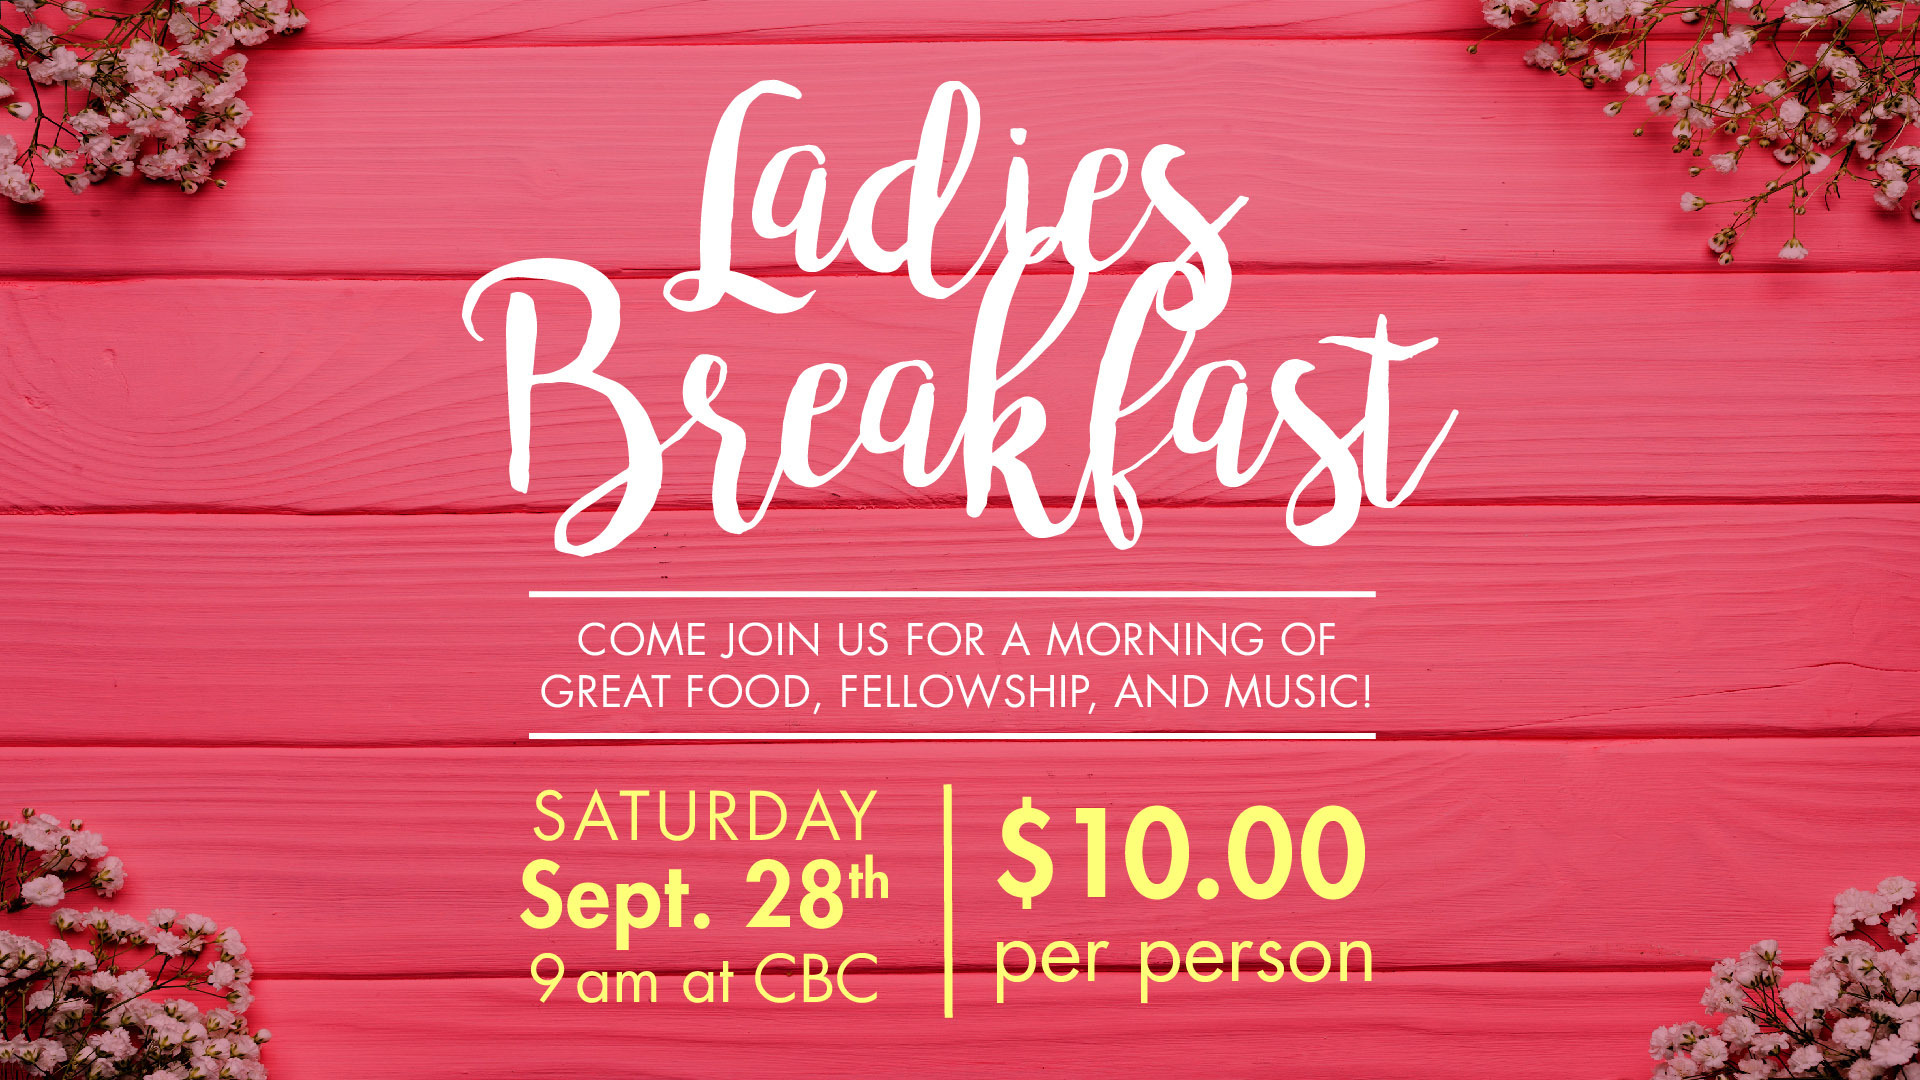 Ladies Breakfast